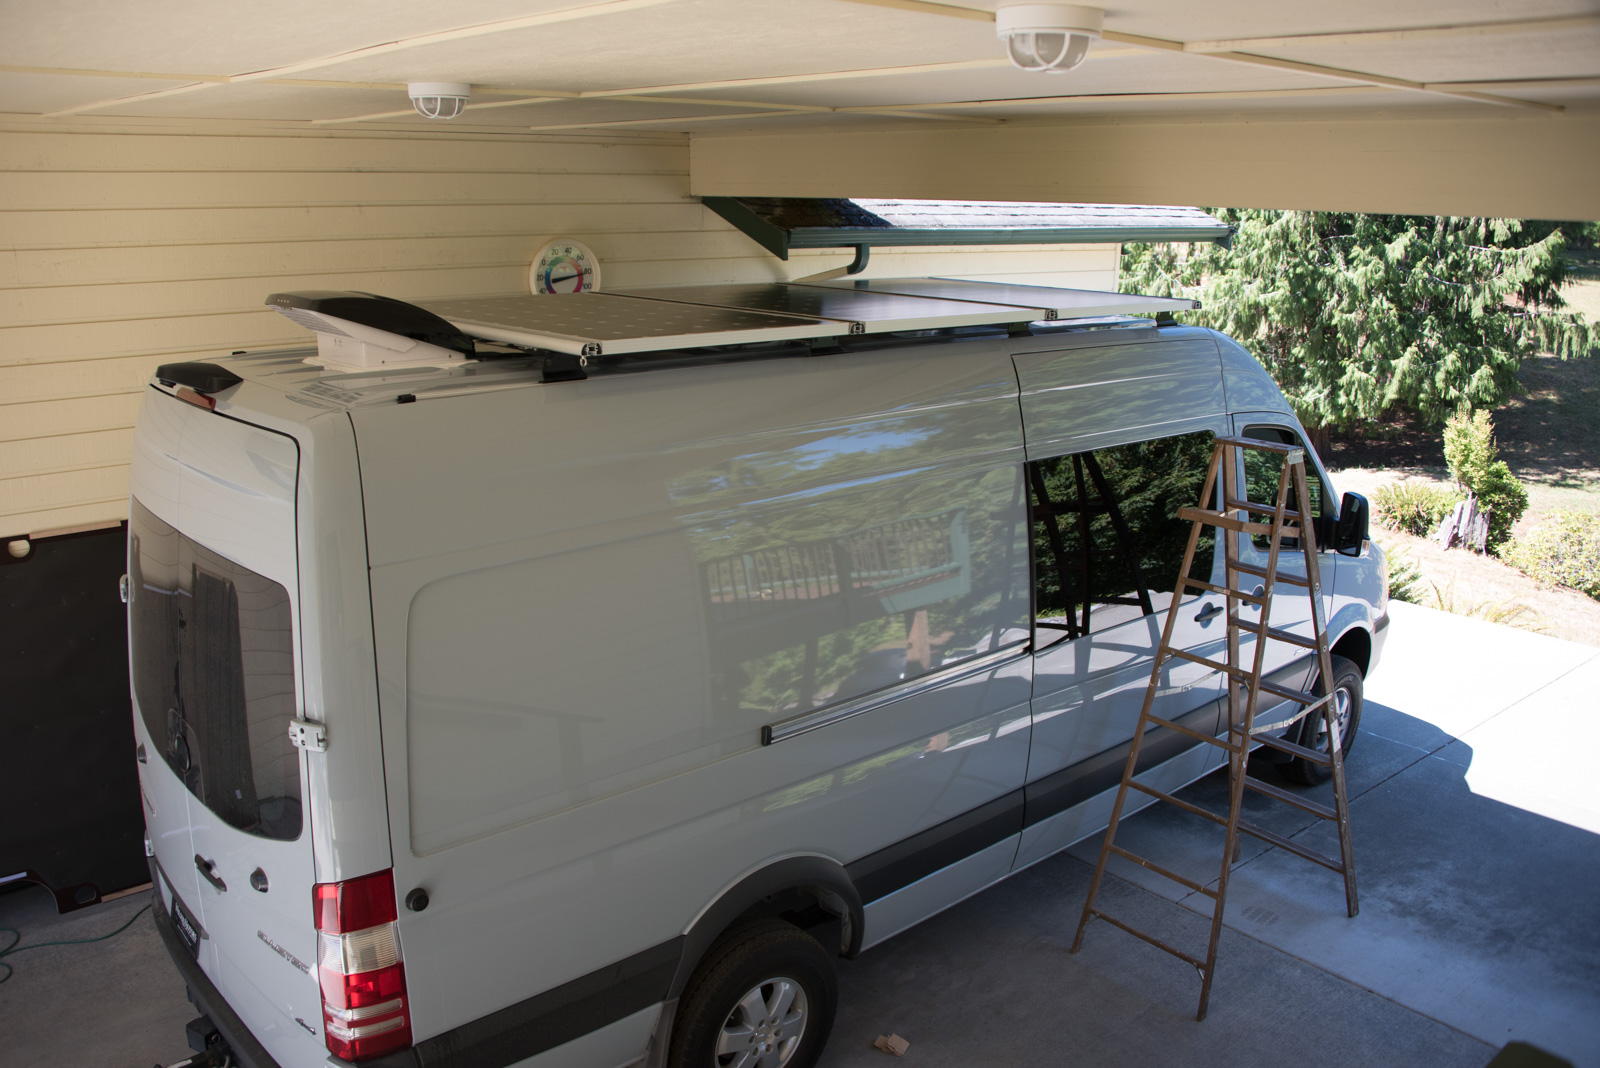 Solar panels mounted to roof rack crosspieces